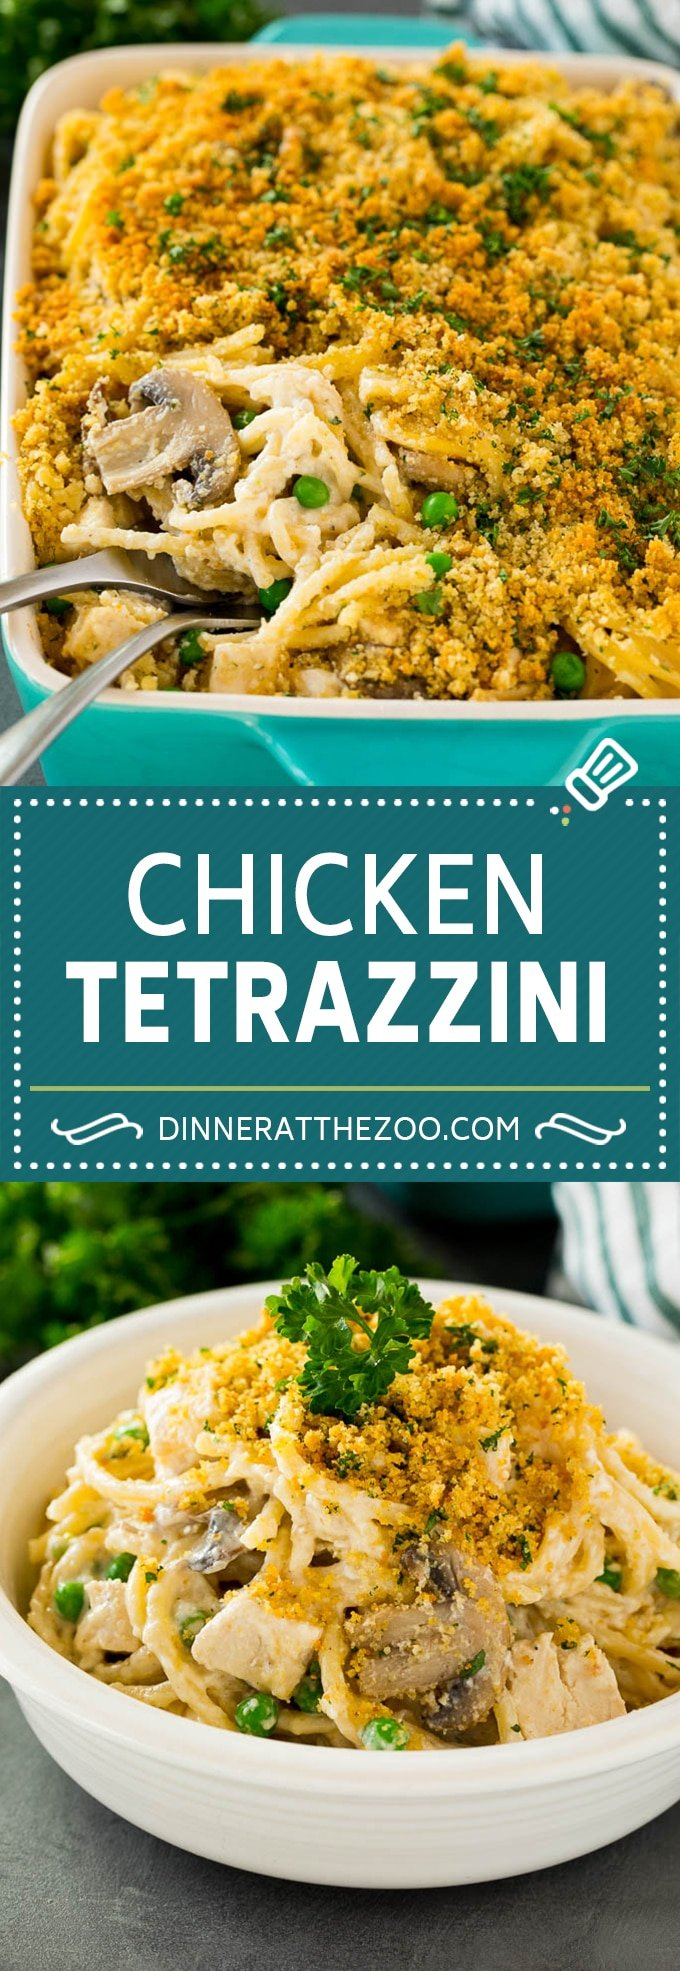 This chicken tetrazzini is spaghetti, mushrooms, peas, chicken and cheese, all tossed together in a homemade creamy sauce.